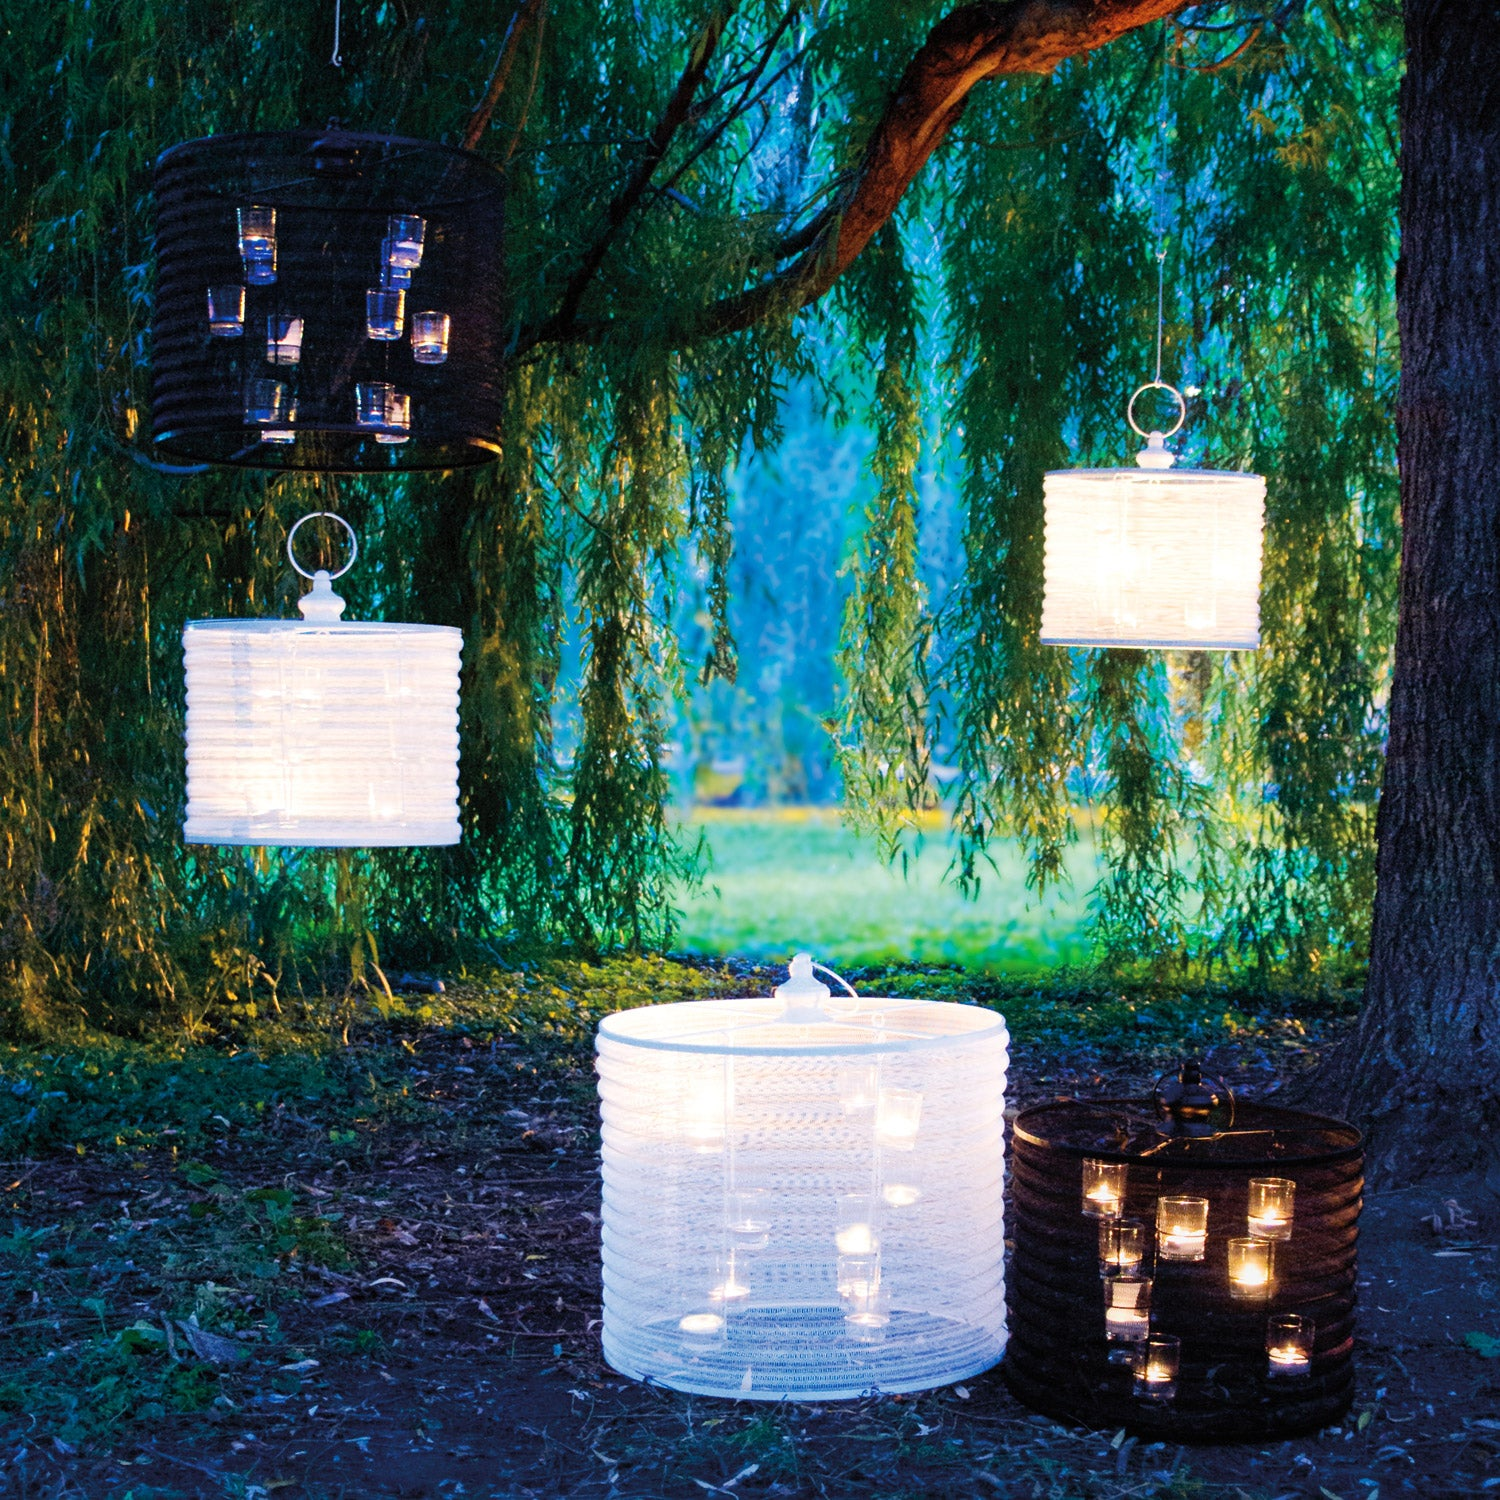 White and black Aria Candle Chandeliers in a moody weeping willow tree setting.